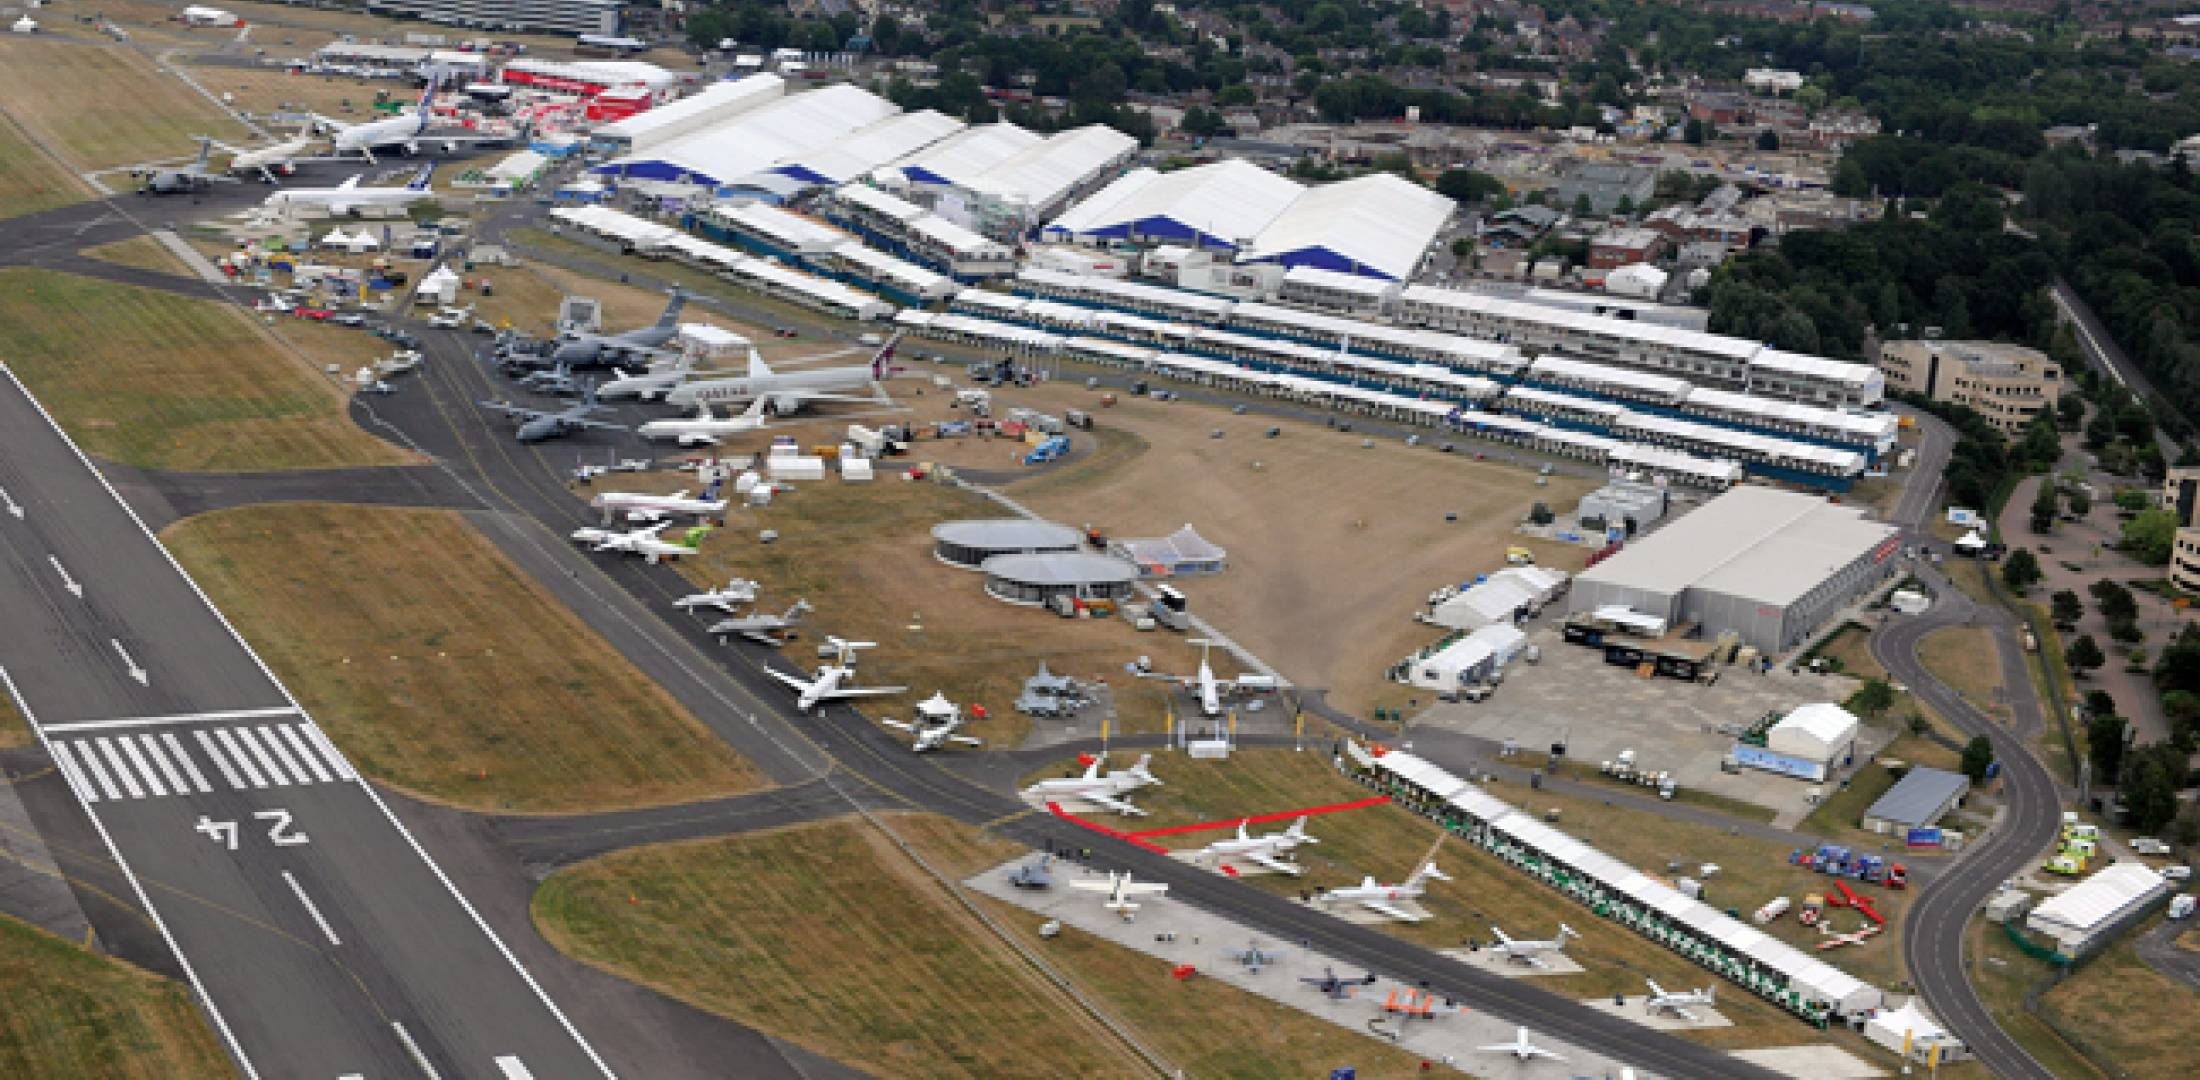 Two tough years of harsh business conditions  since the 2010 Farnborough International show  have not dented prospects for this year's event,  say organizers. (Photo: Mark Wagner)